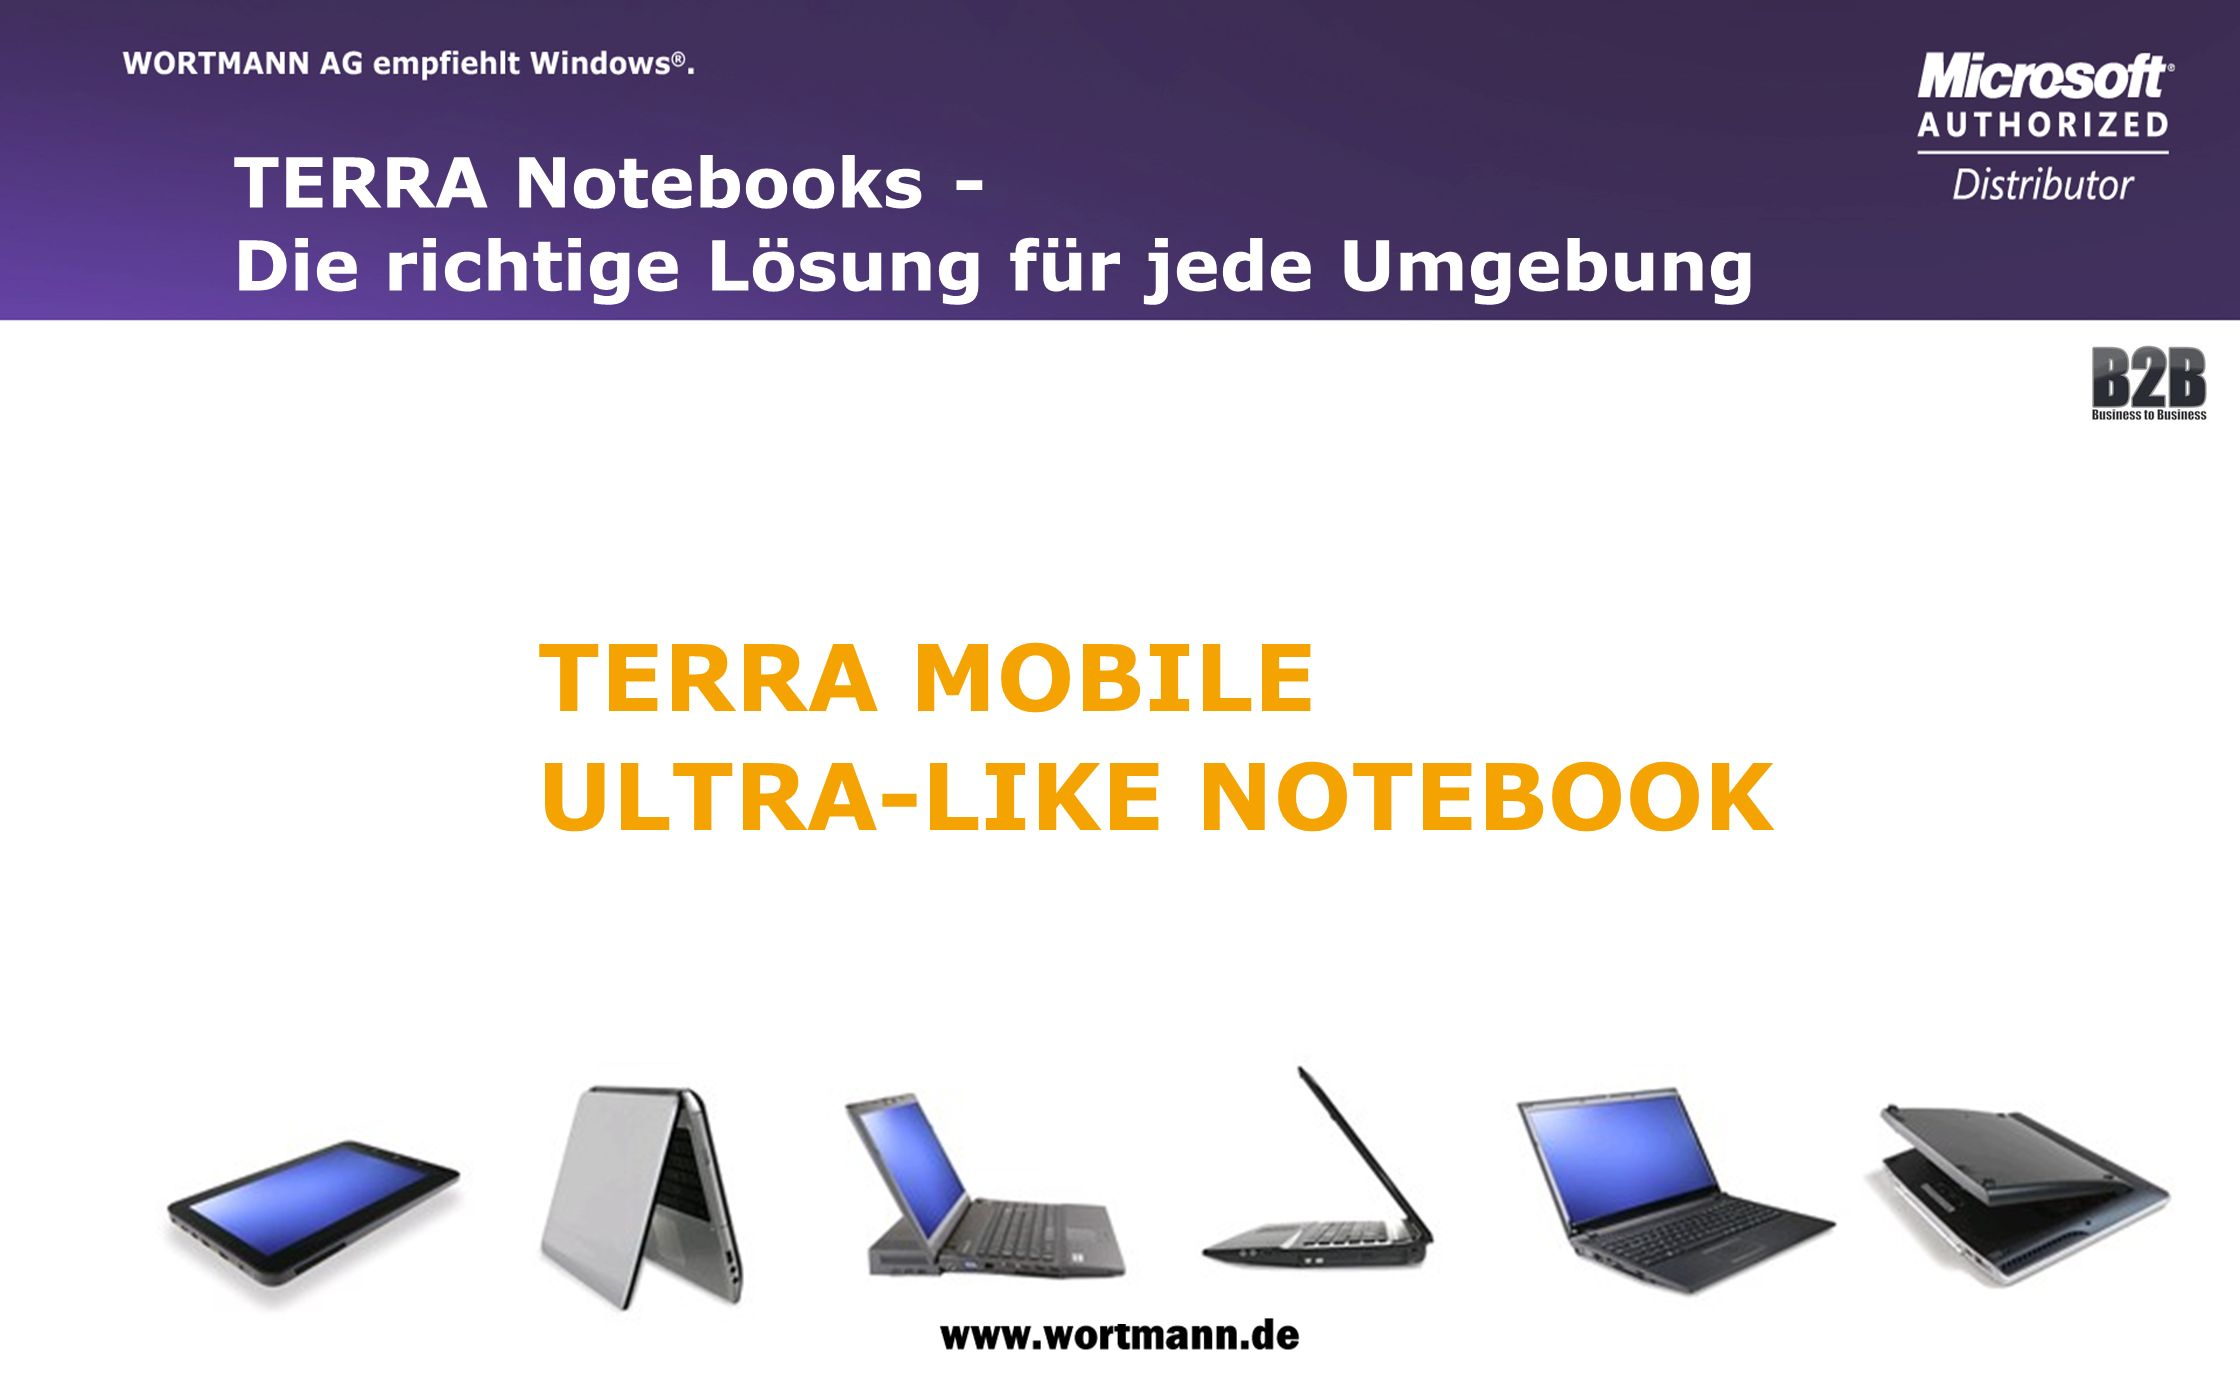 TERRA MOBILE ULTRA-LIKE NOTEBOOK TERRA Notebooks -